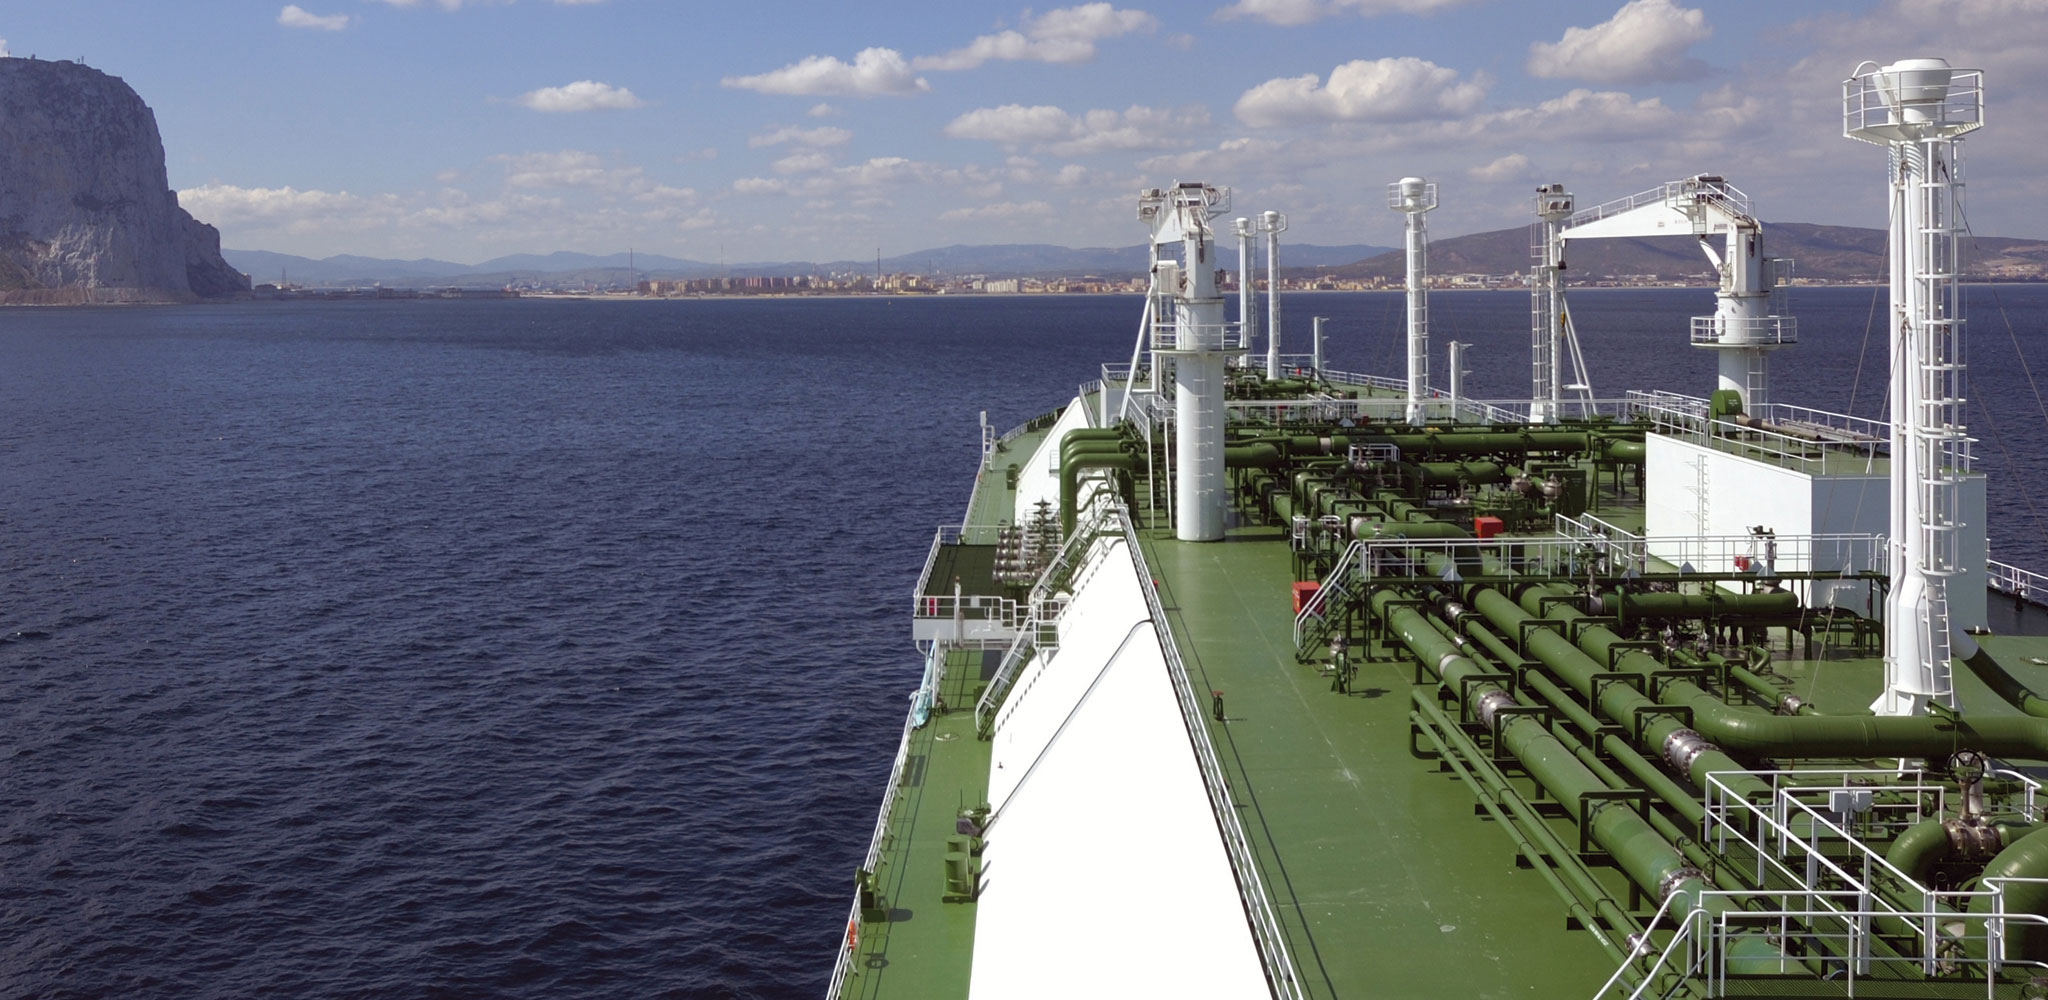 An Oil Tanker coming into port